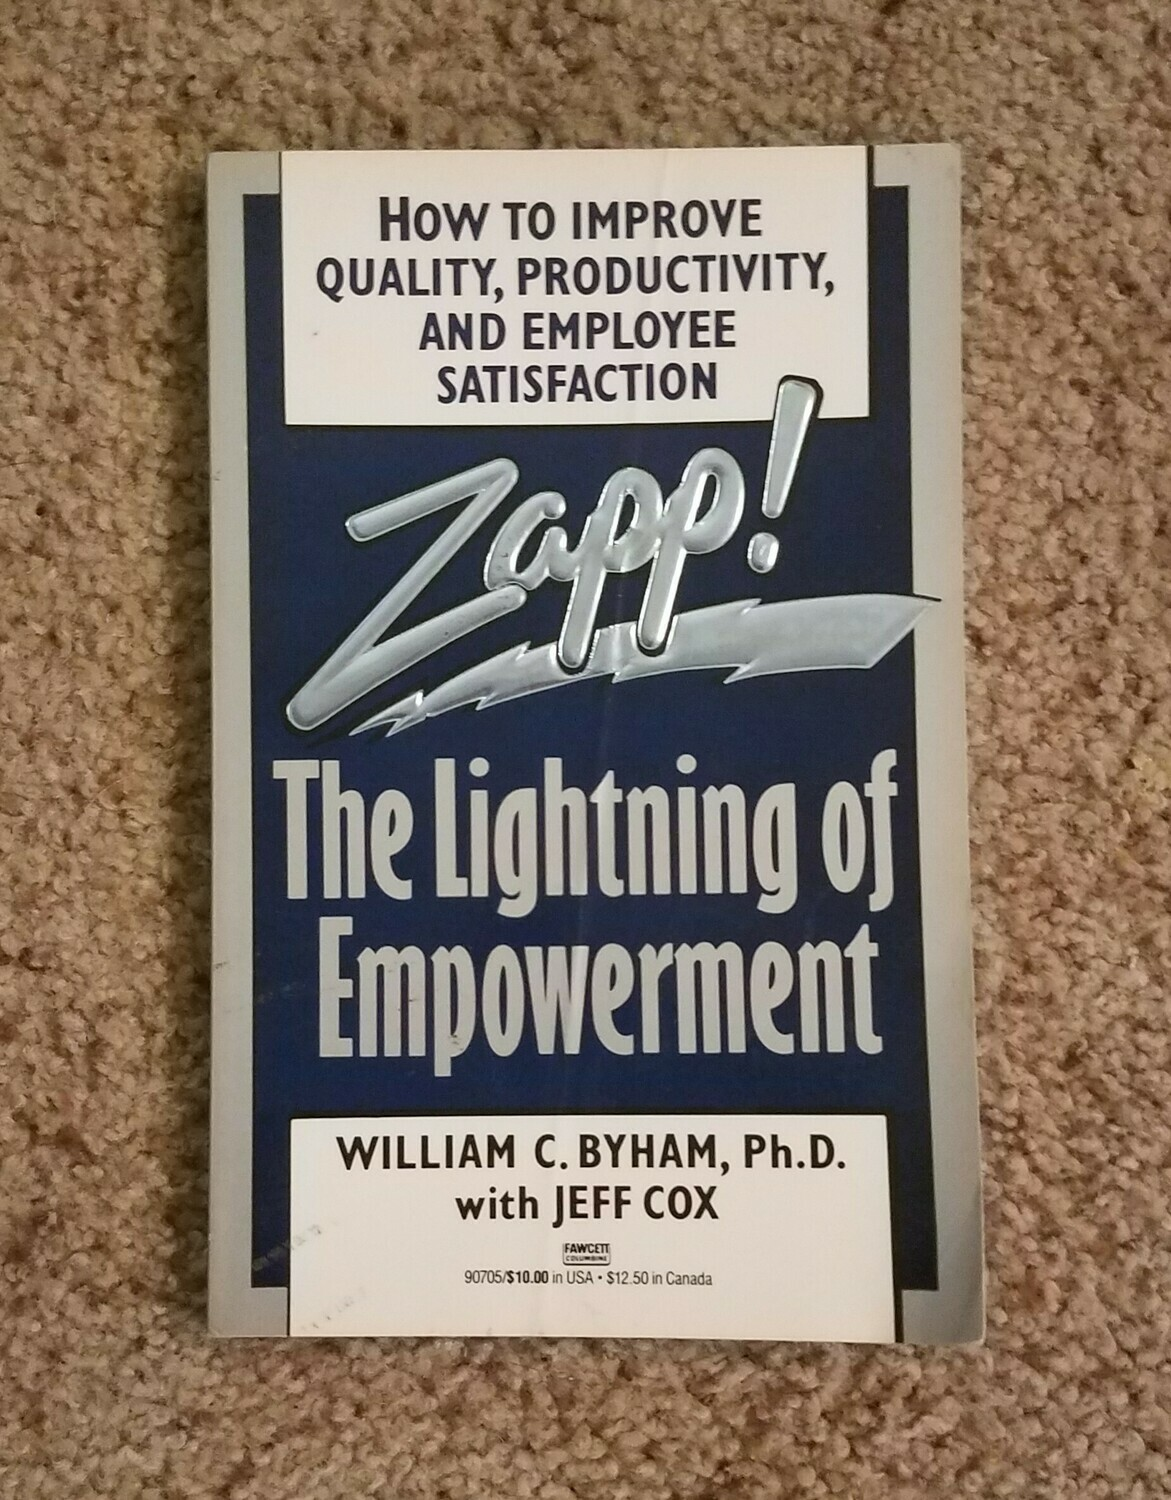 Zapp! The Lightning of Empowerment by William C. Byham, Ph.D. with Jeff Cox